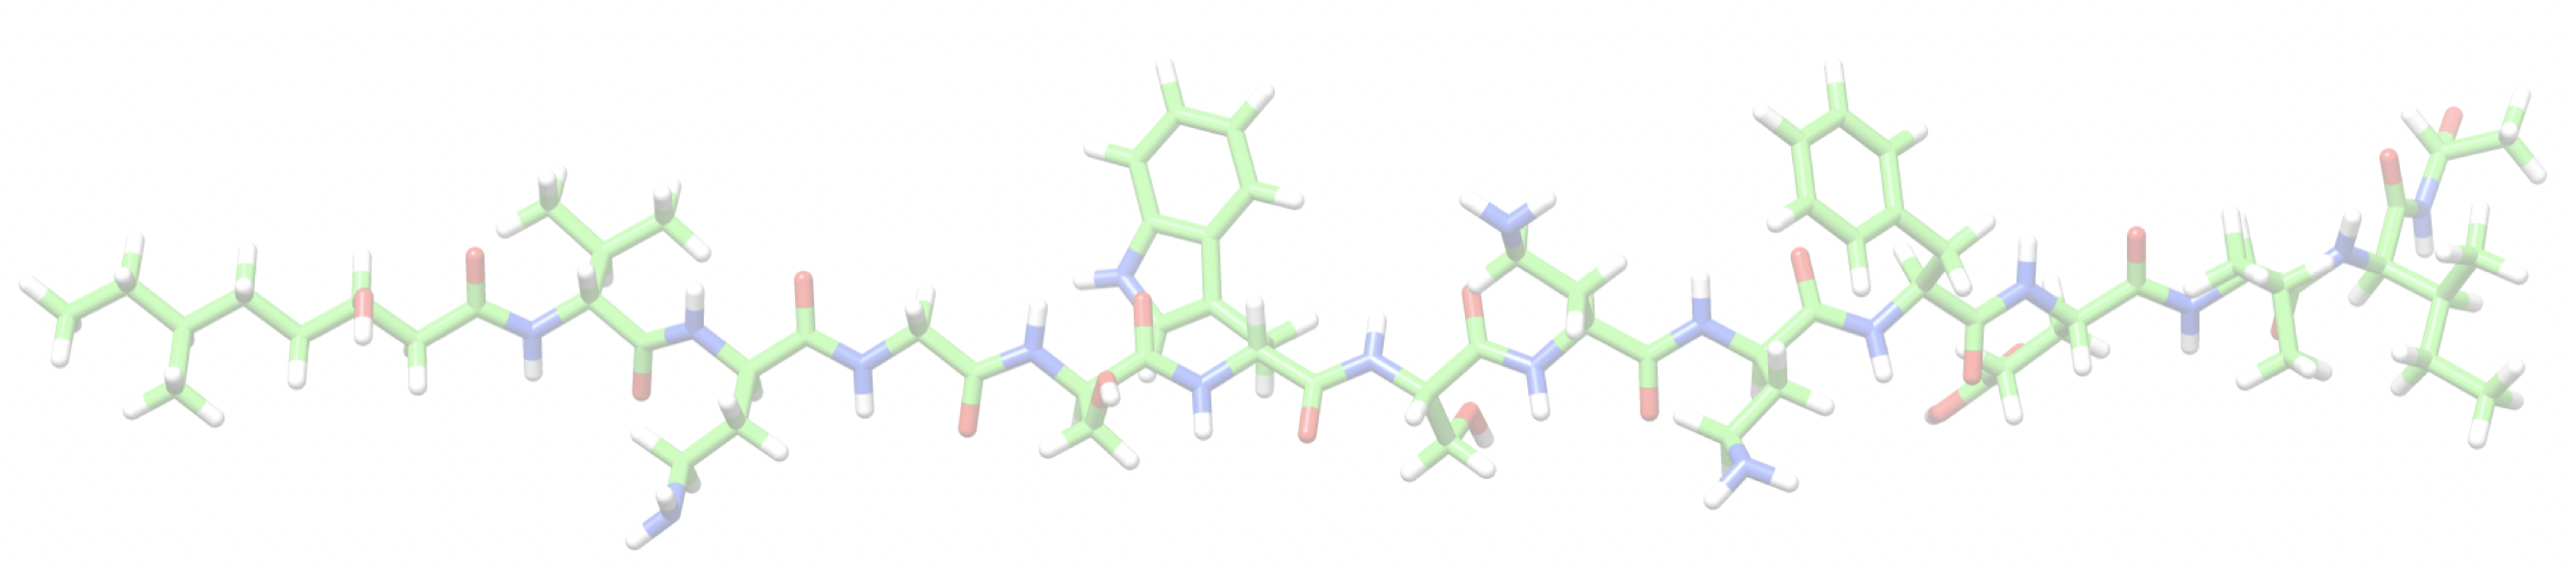 The Antimicrobial Lipopeptide Tridecaptin A1